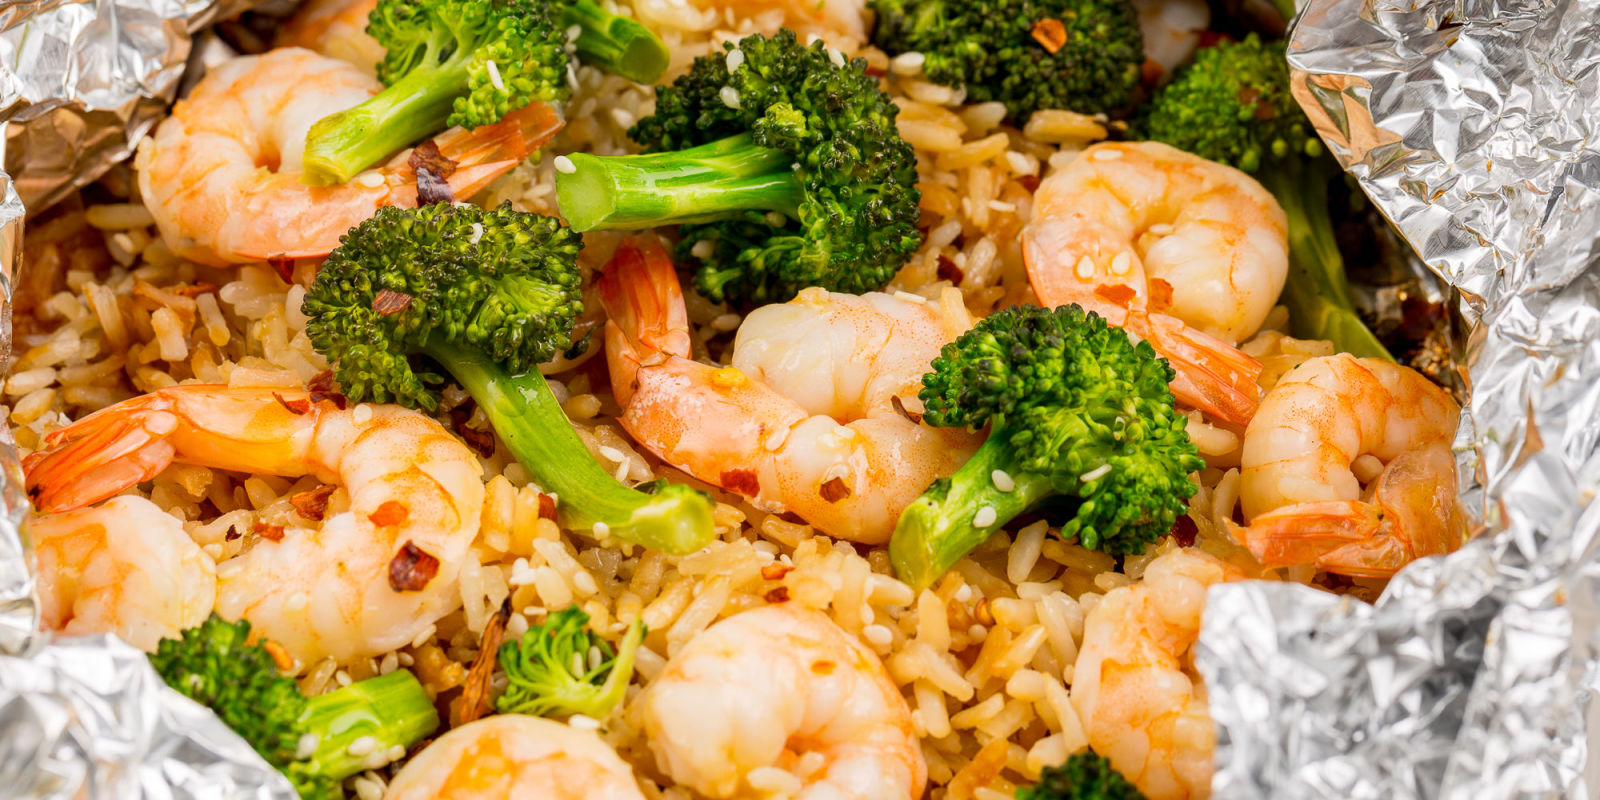 Best Shrimp, Broccoli and Rice Foil Packs Recipe - Grill Recipes ...